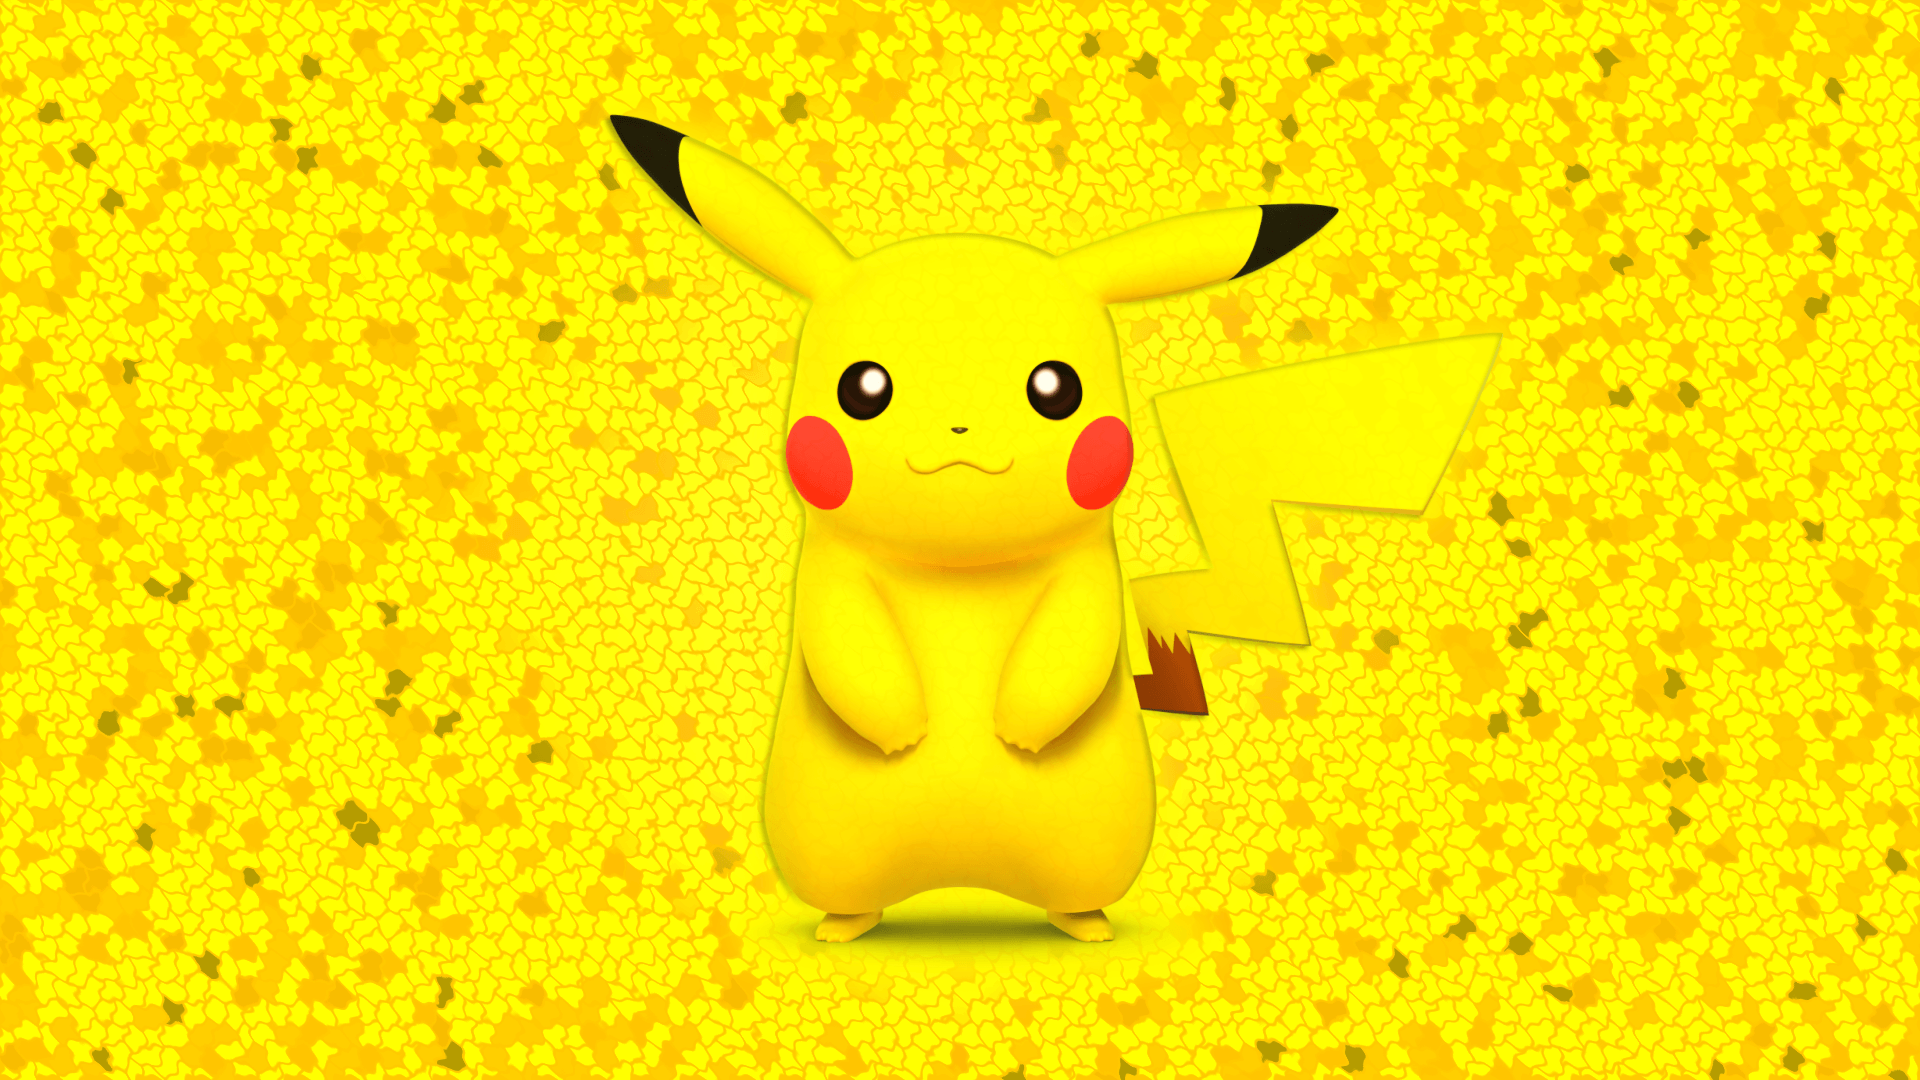 Pikachu 3D Wallpapers Top Free Pikachu 3D Backgrounds